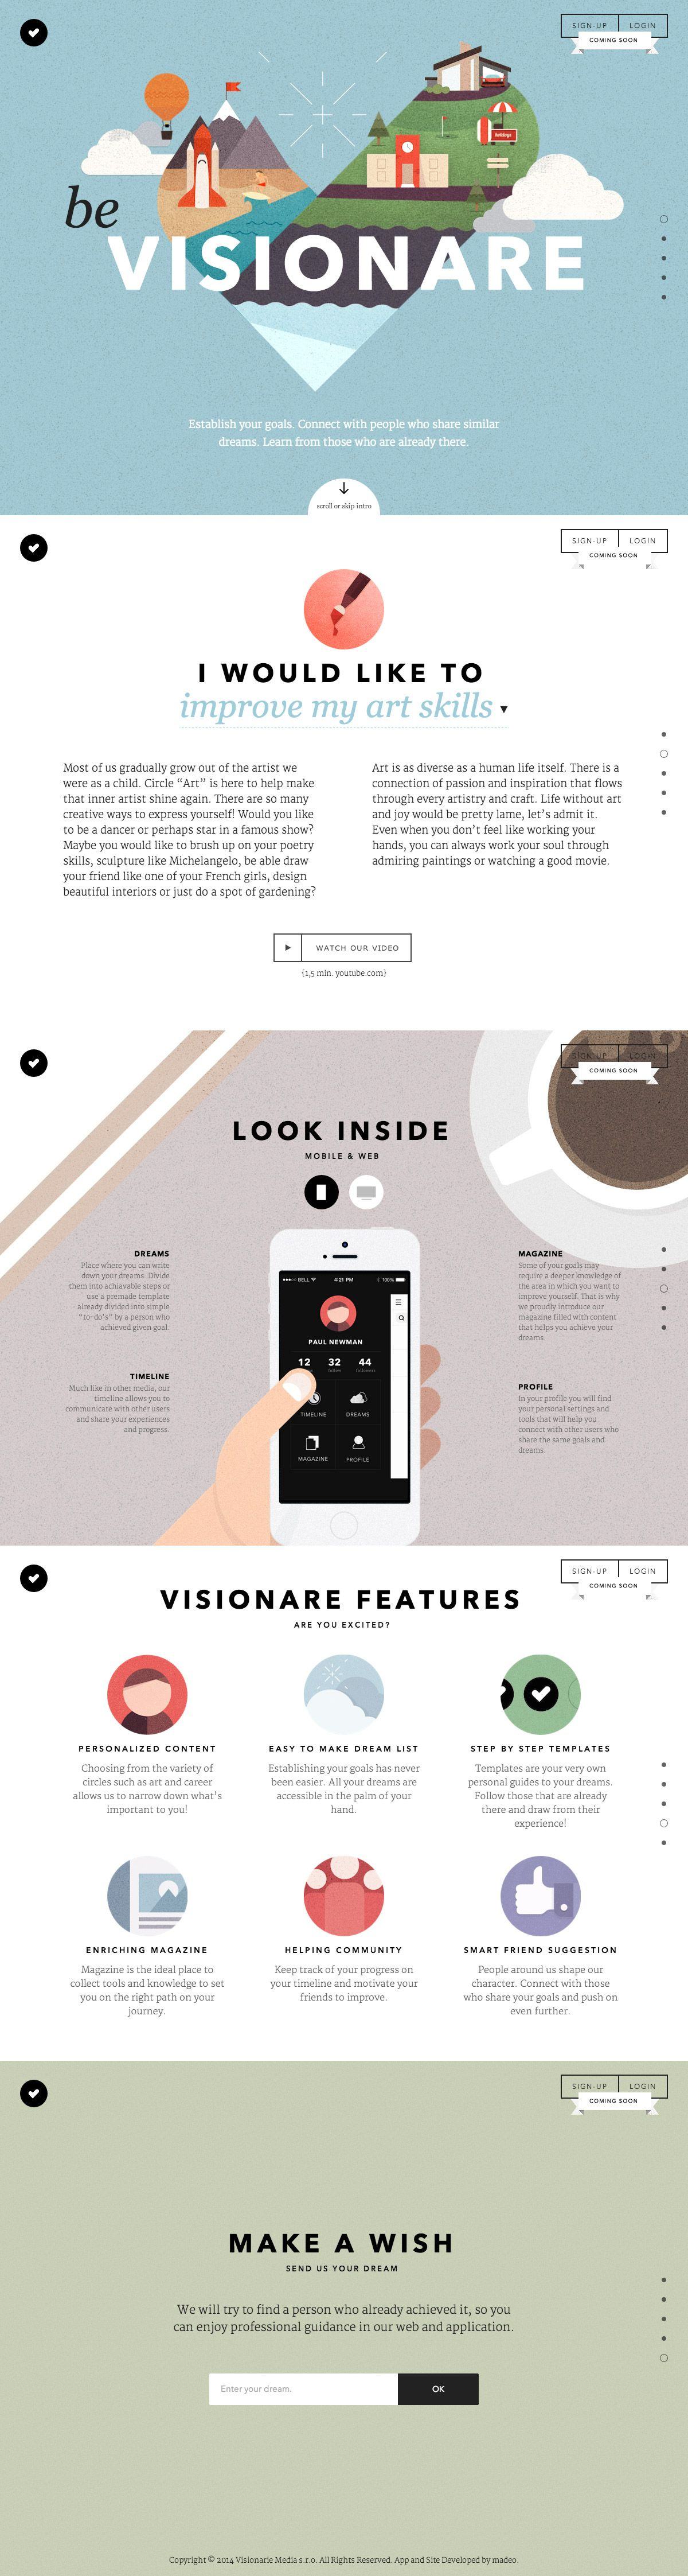 Epingle Sur Web Design Inspiration Ui Ux